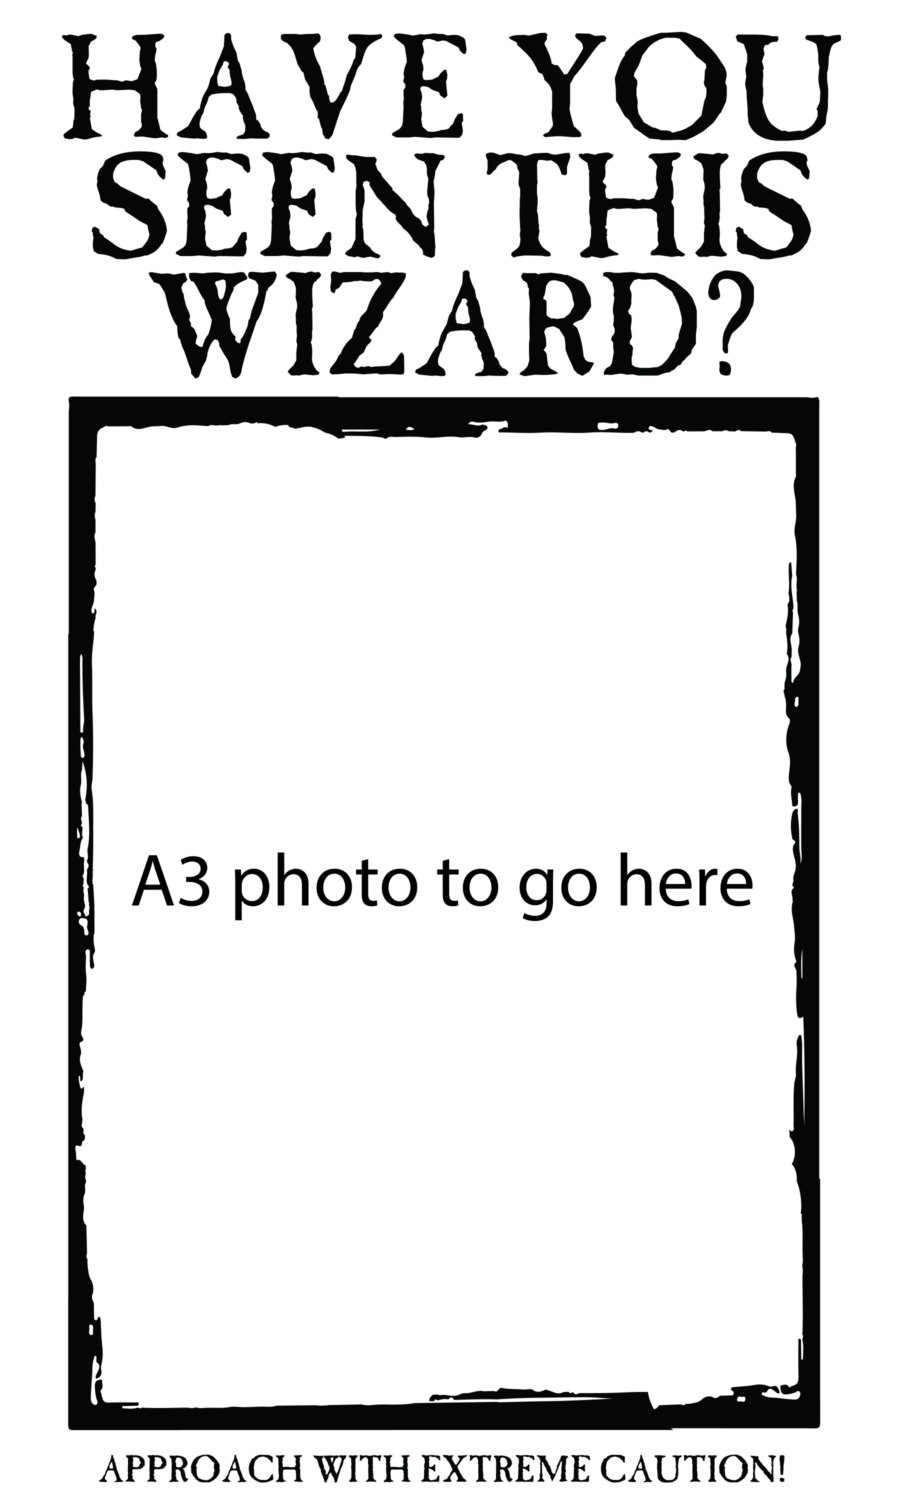 graphic about Have You Seen This Wizard Printable referred to as Consist of On your own Discovered This Wizard Wished-for Poster Sticker, Wizard Ideal Sticker